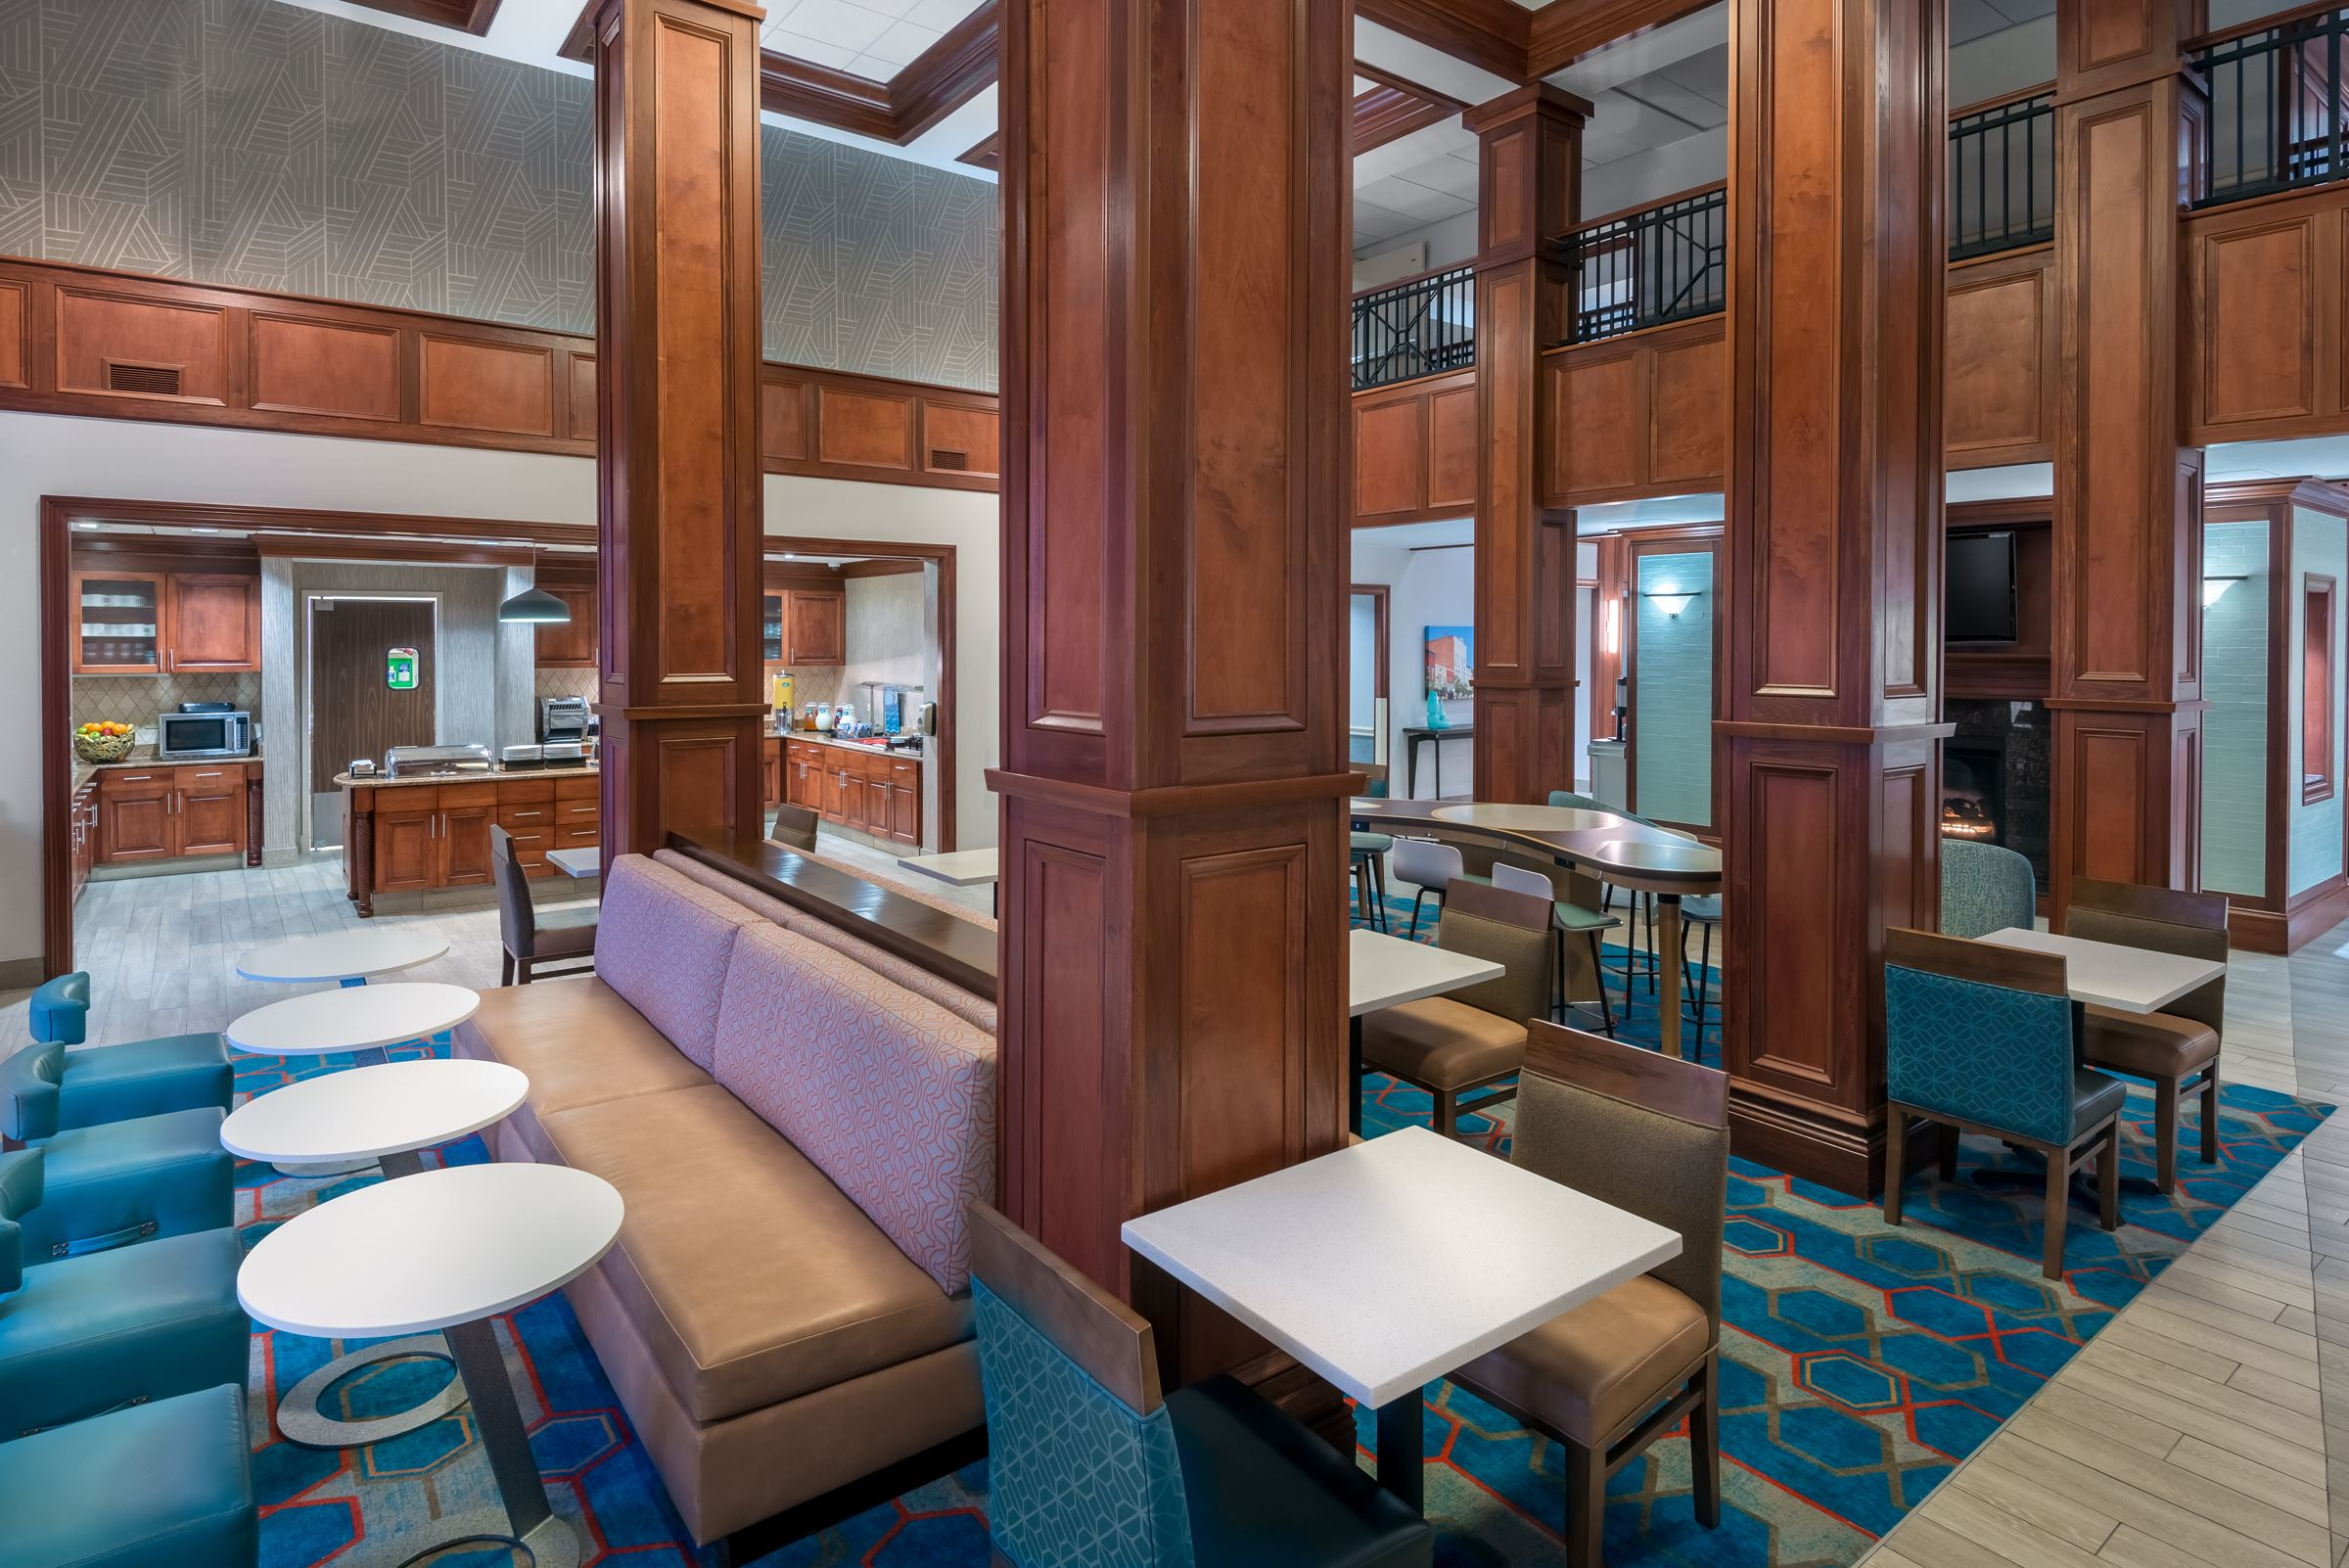 Breakfast area of Homewood Suites with tall wooden columns and striking decor